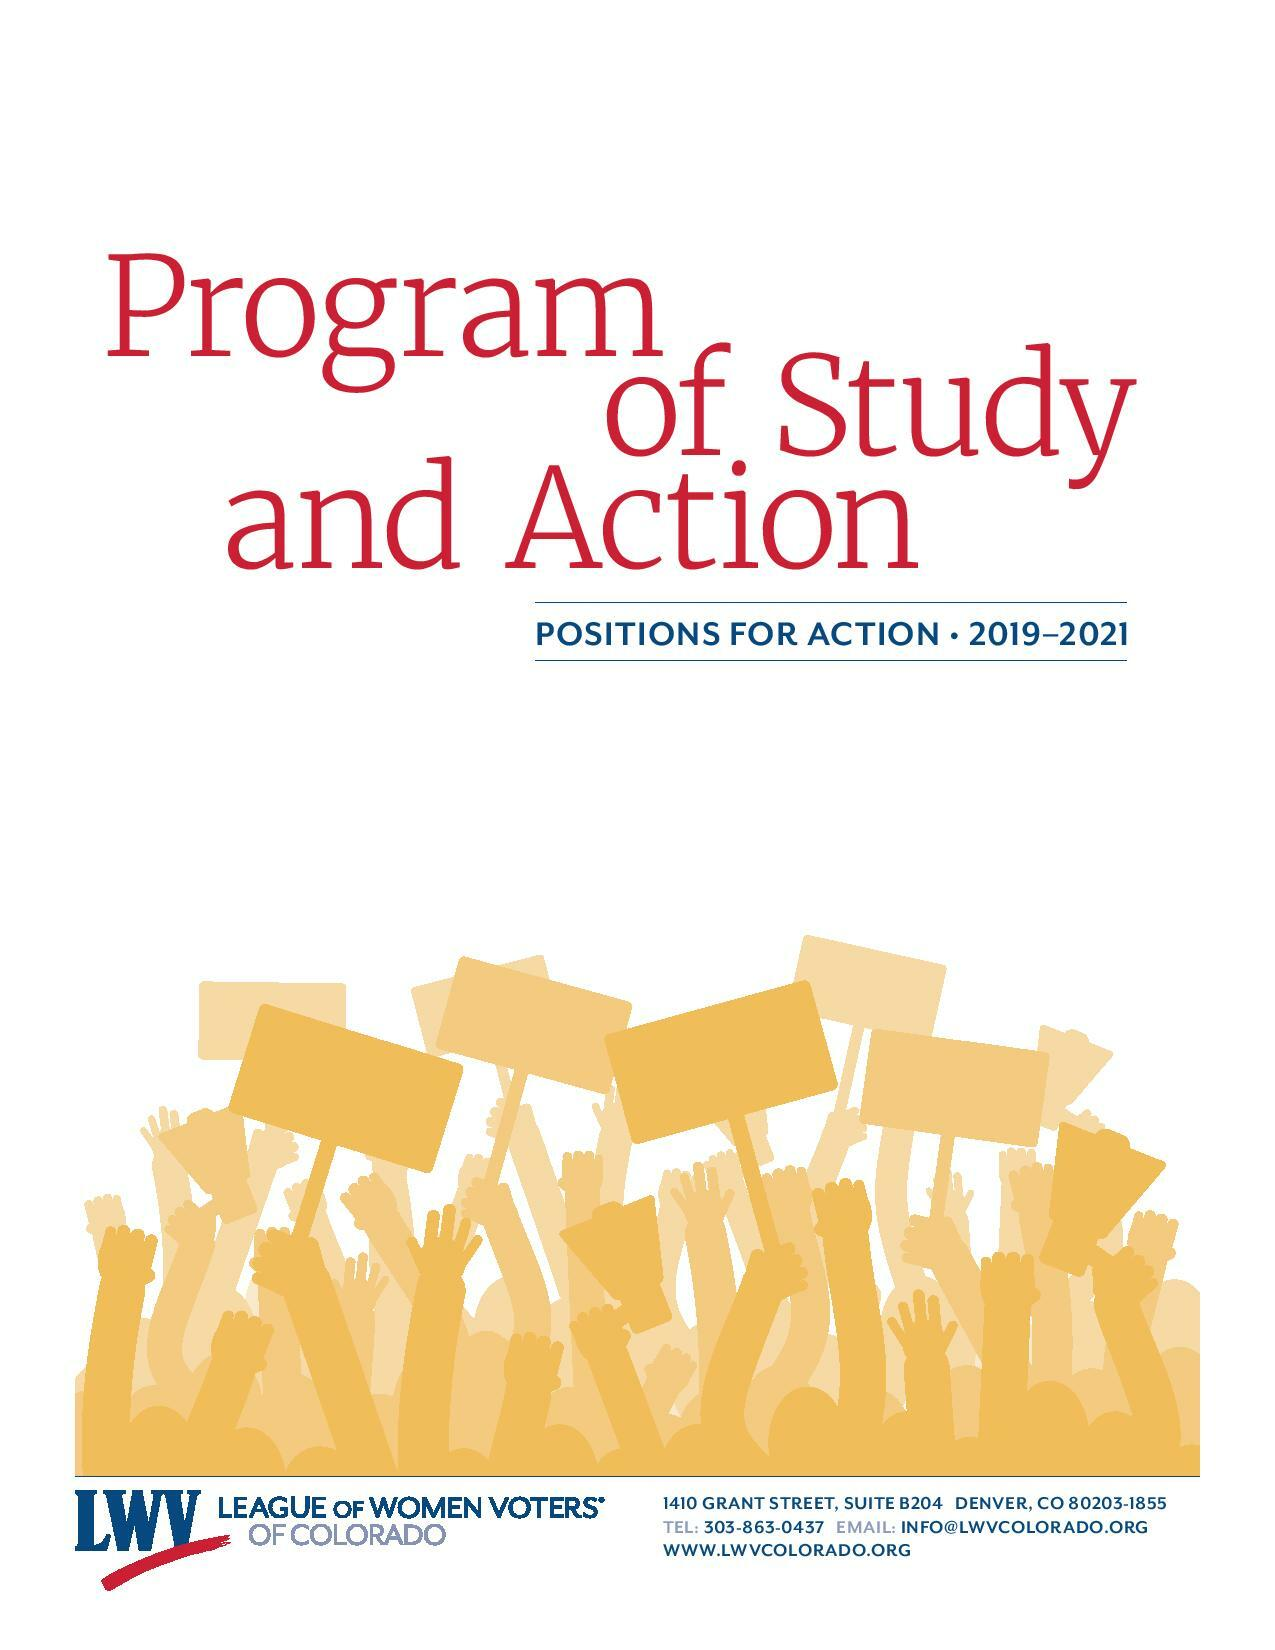 Program of Study and Action 2019-21